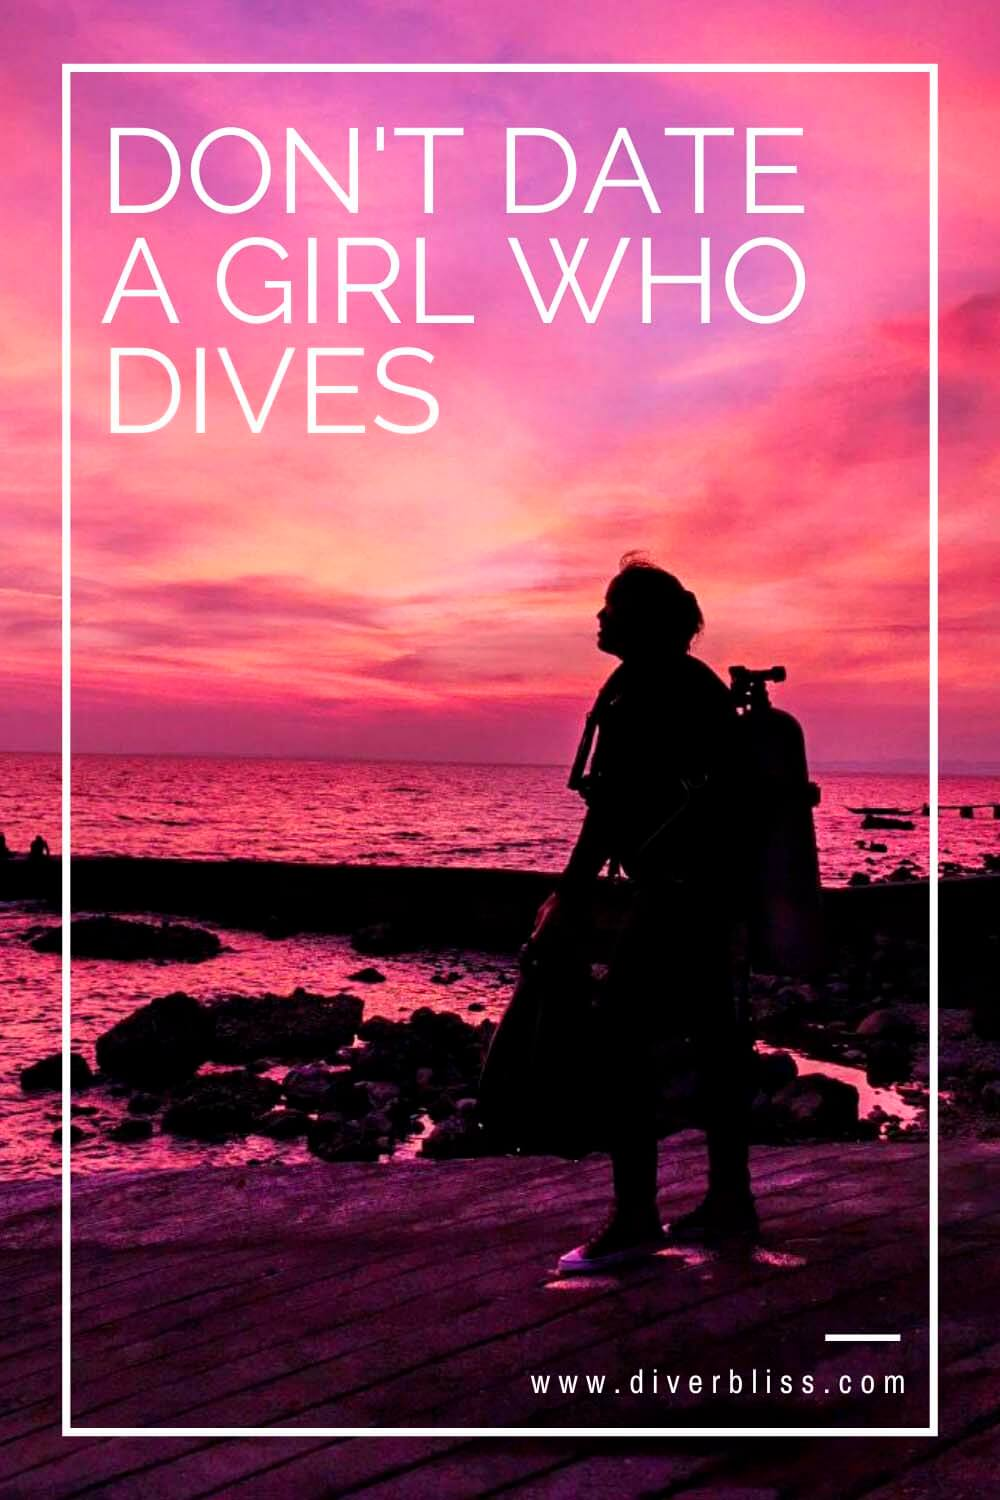 Don't Date a girl who dives